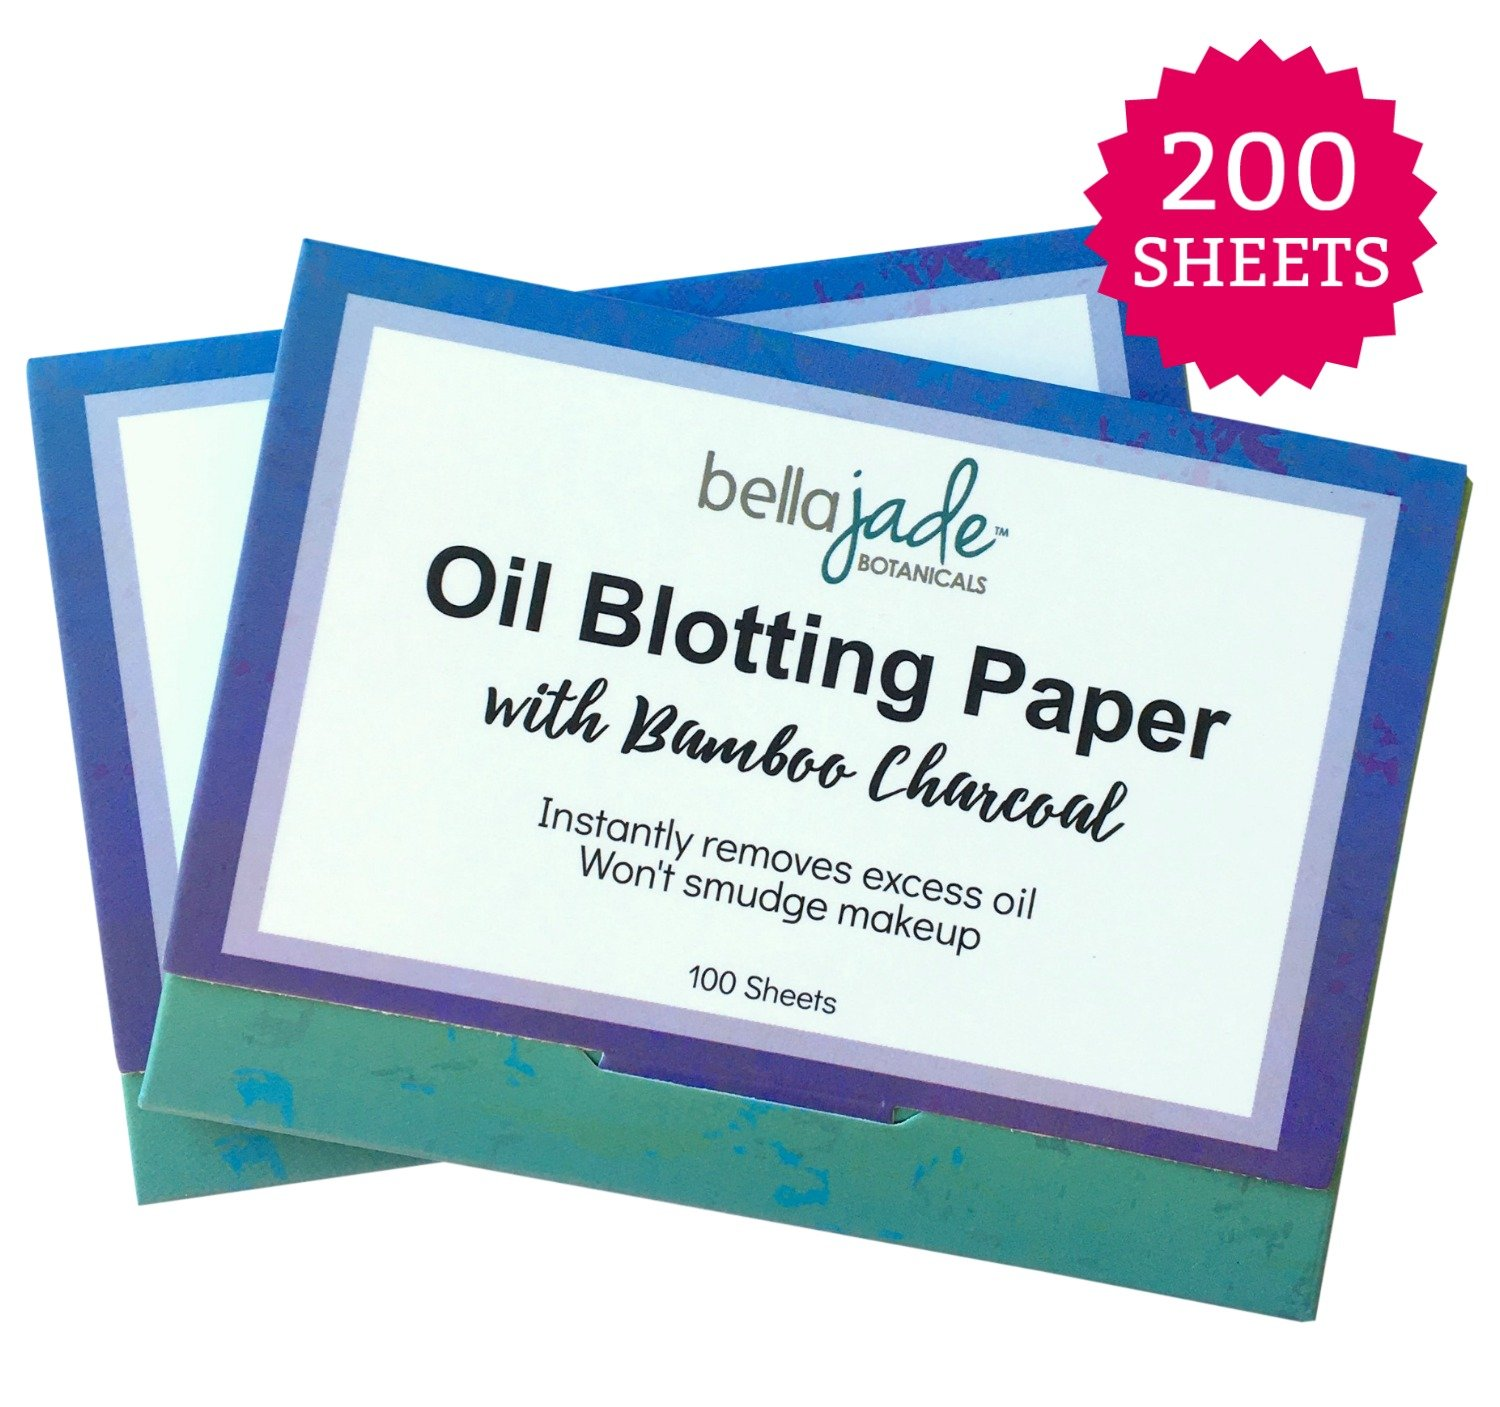 Oil Blotting Paper Sheets - Instantly Absorbs Excess Oil and Shine from Face without Smudging Makeup - Large size, 200 Tissues ... (charcoal) by Bella Jade